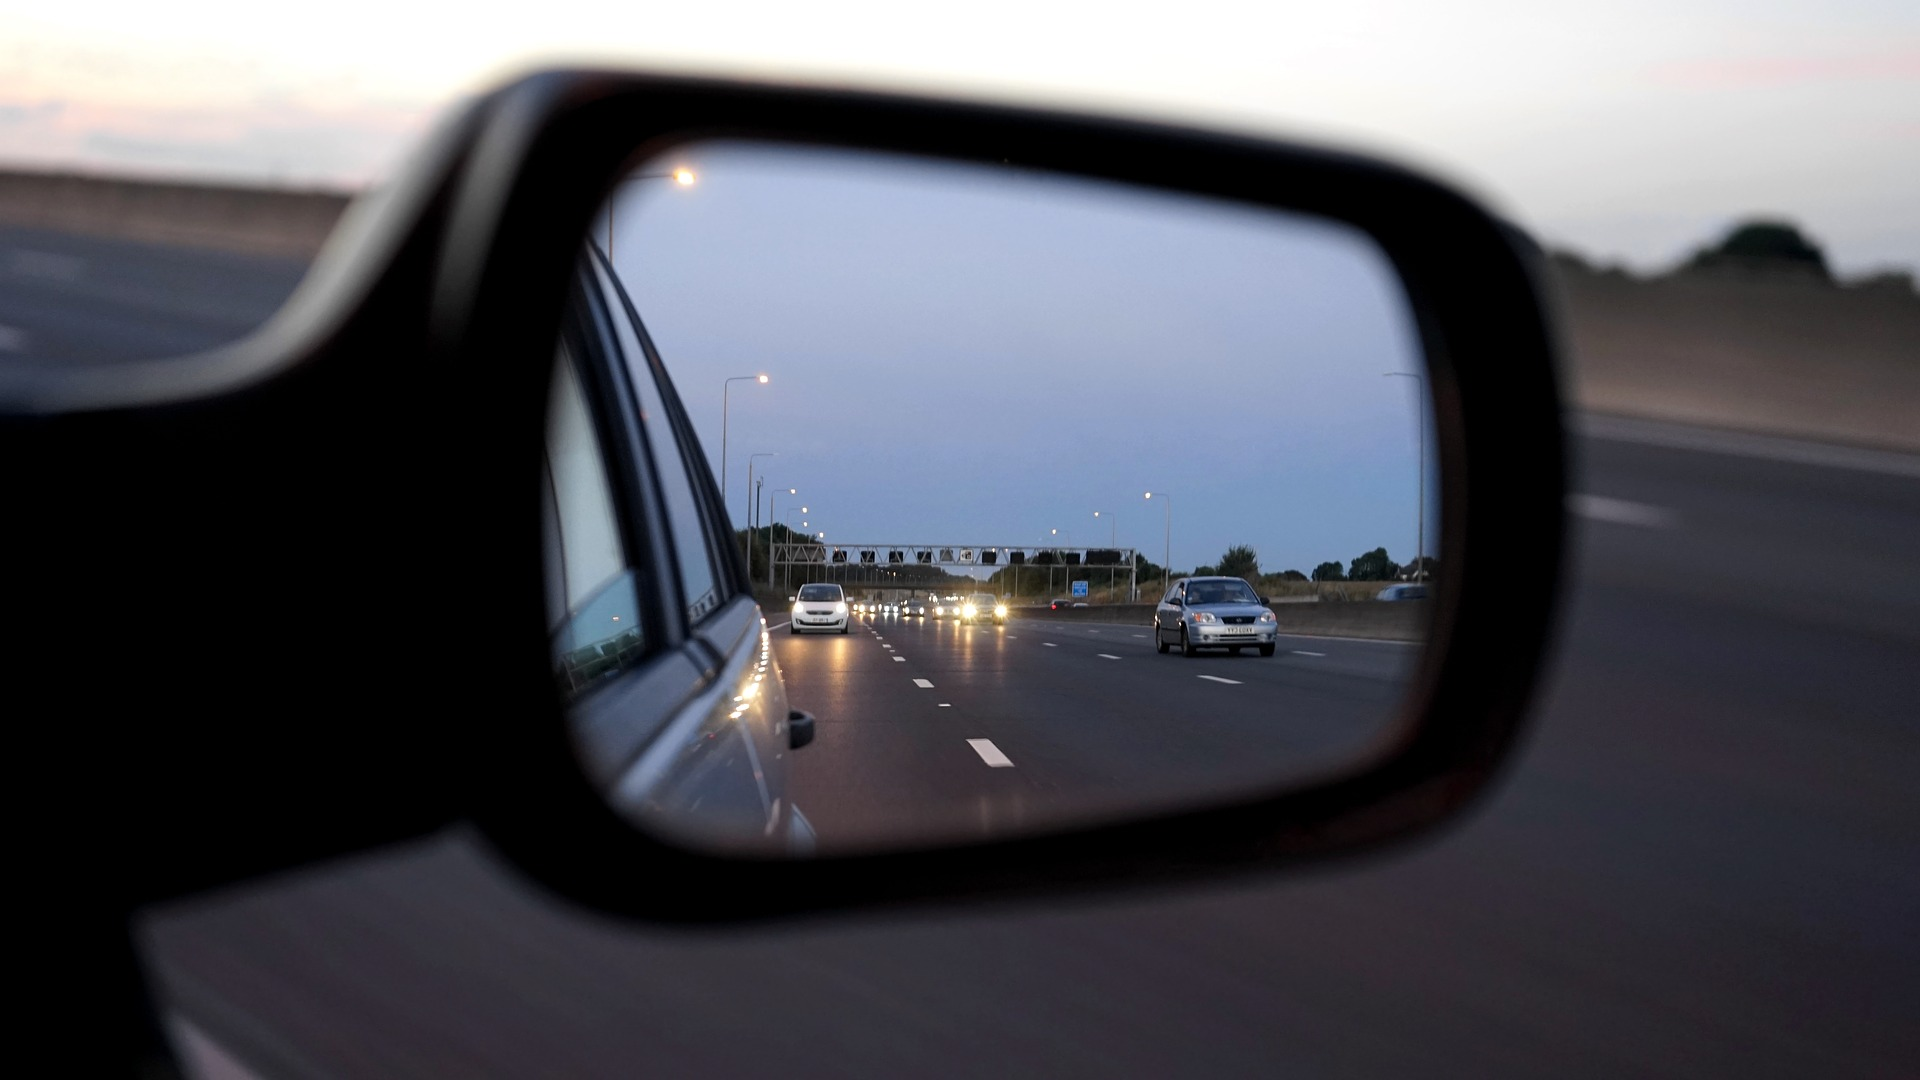 Look in your mirrors while driving, so you will always be aware of the others sharing the road with you.